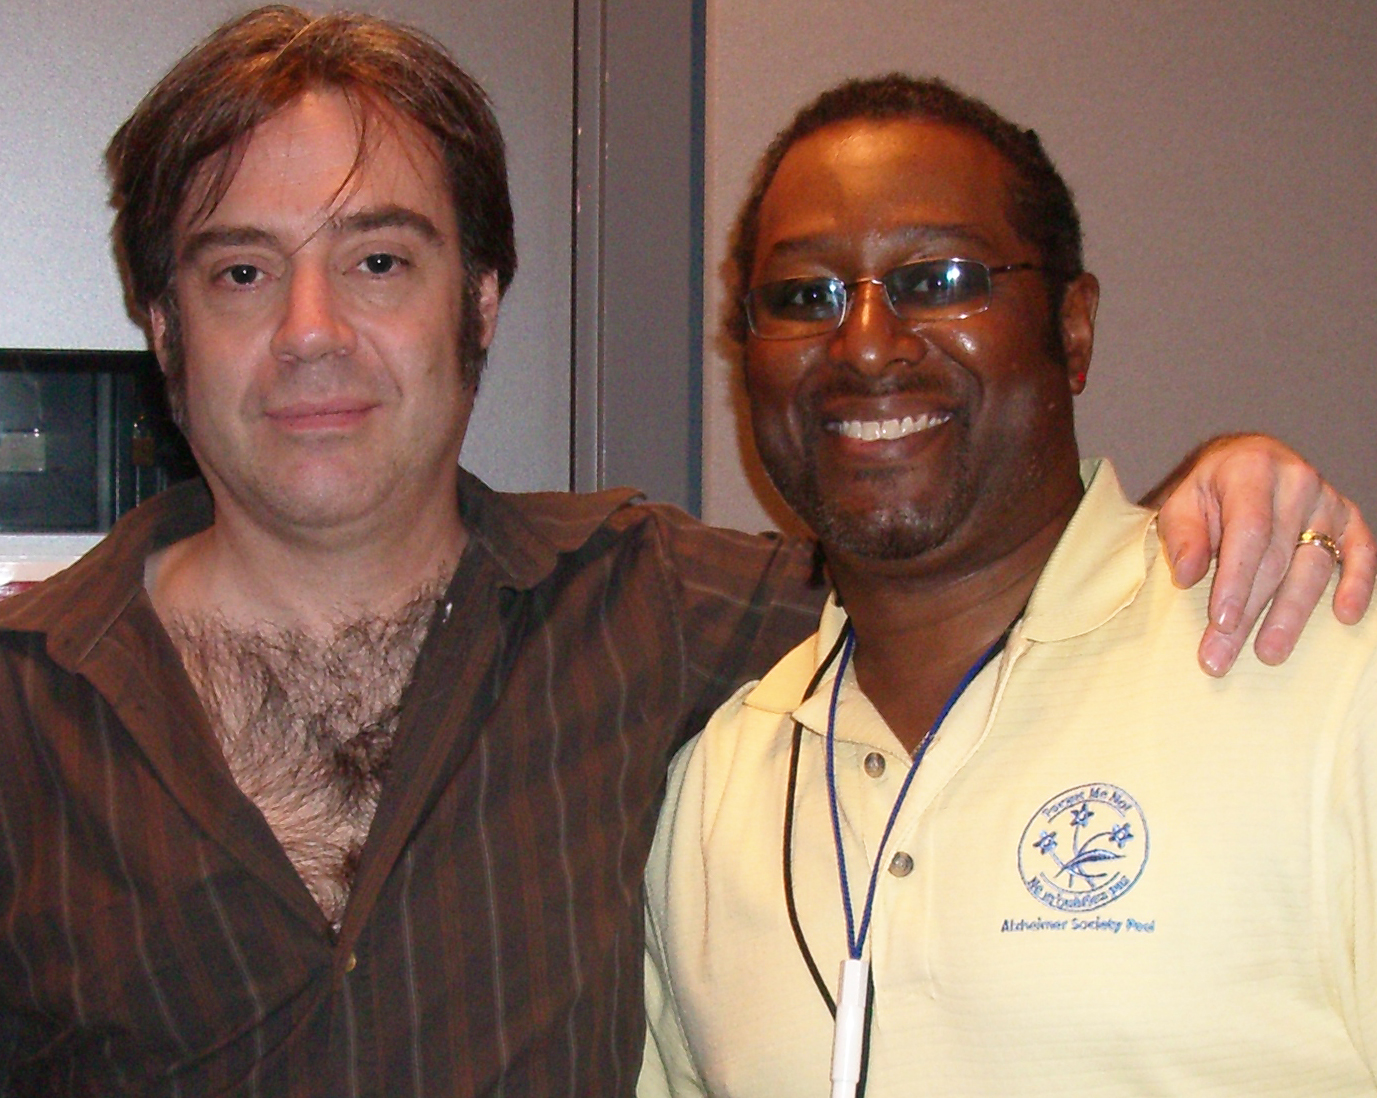 Brad Roberts Crash Test Dummies 680news 680 News Originally Posted By Dummy Lead Singer Of The